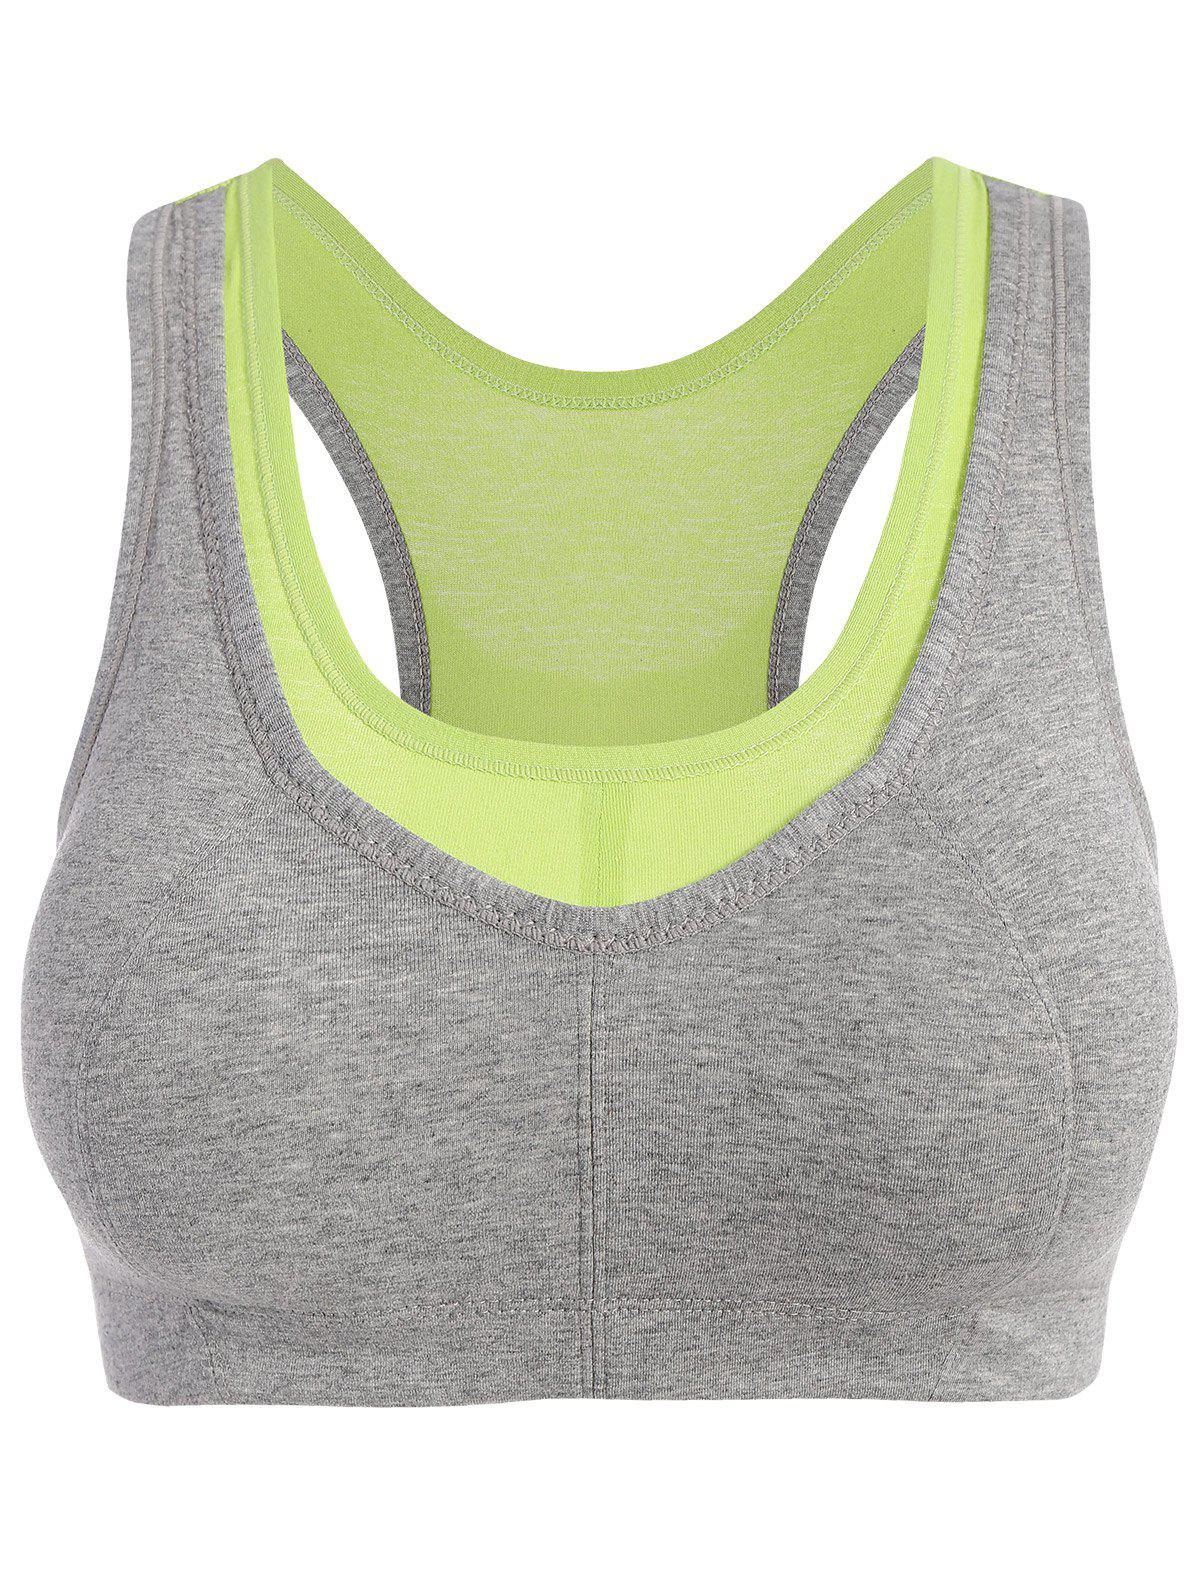 Padded Two Tone Racerback Sports Bra - CRYSTAL GREEN XL